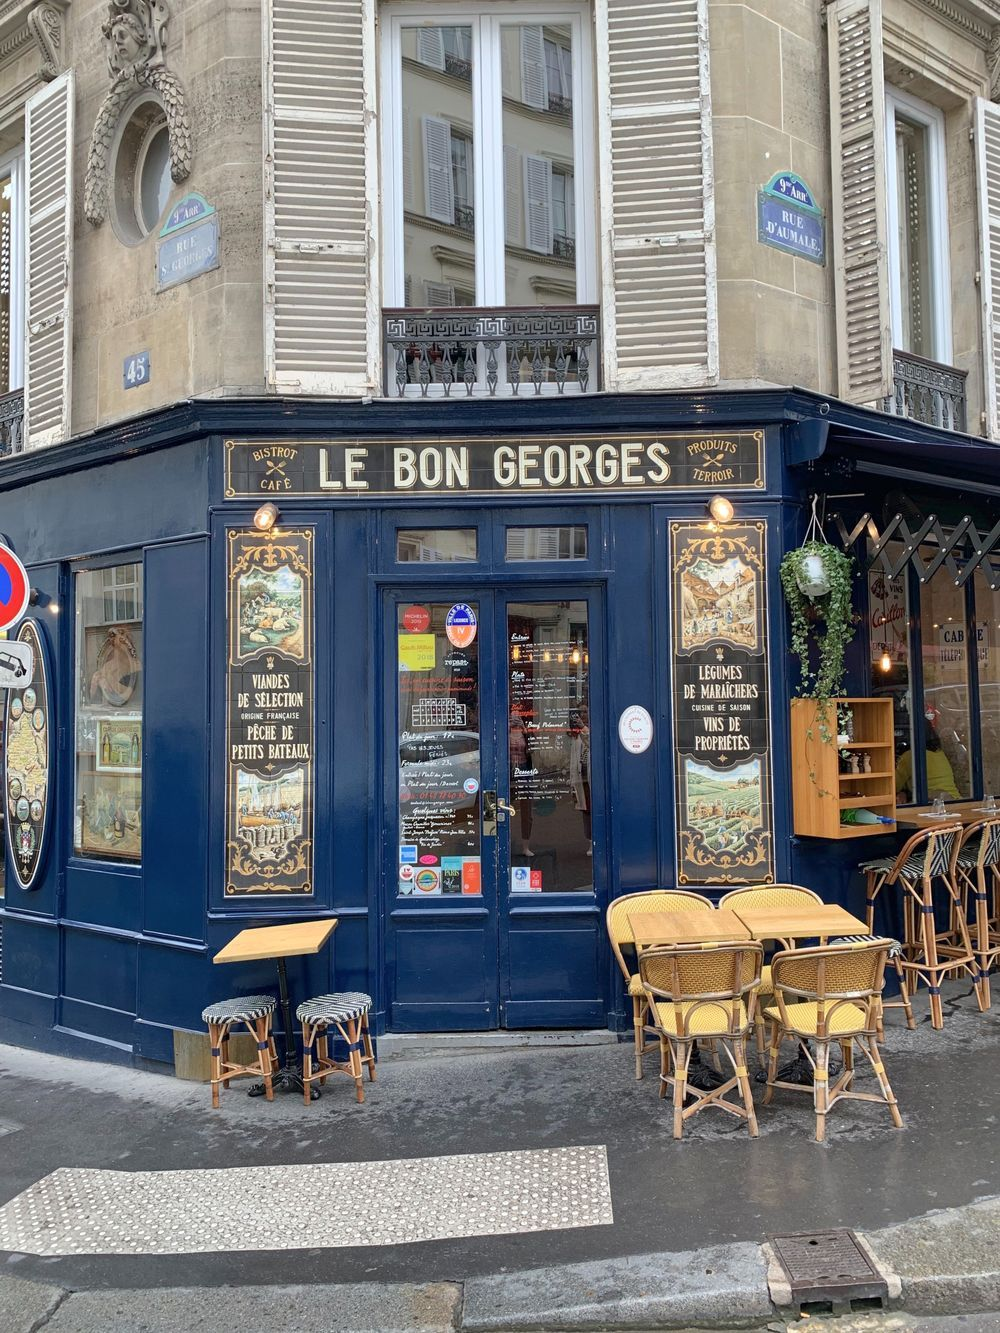 Le bon Georges, Saint Georges, Paris, France